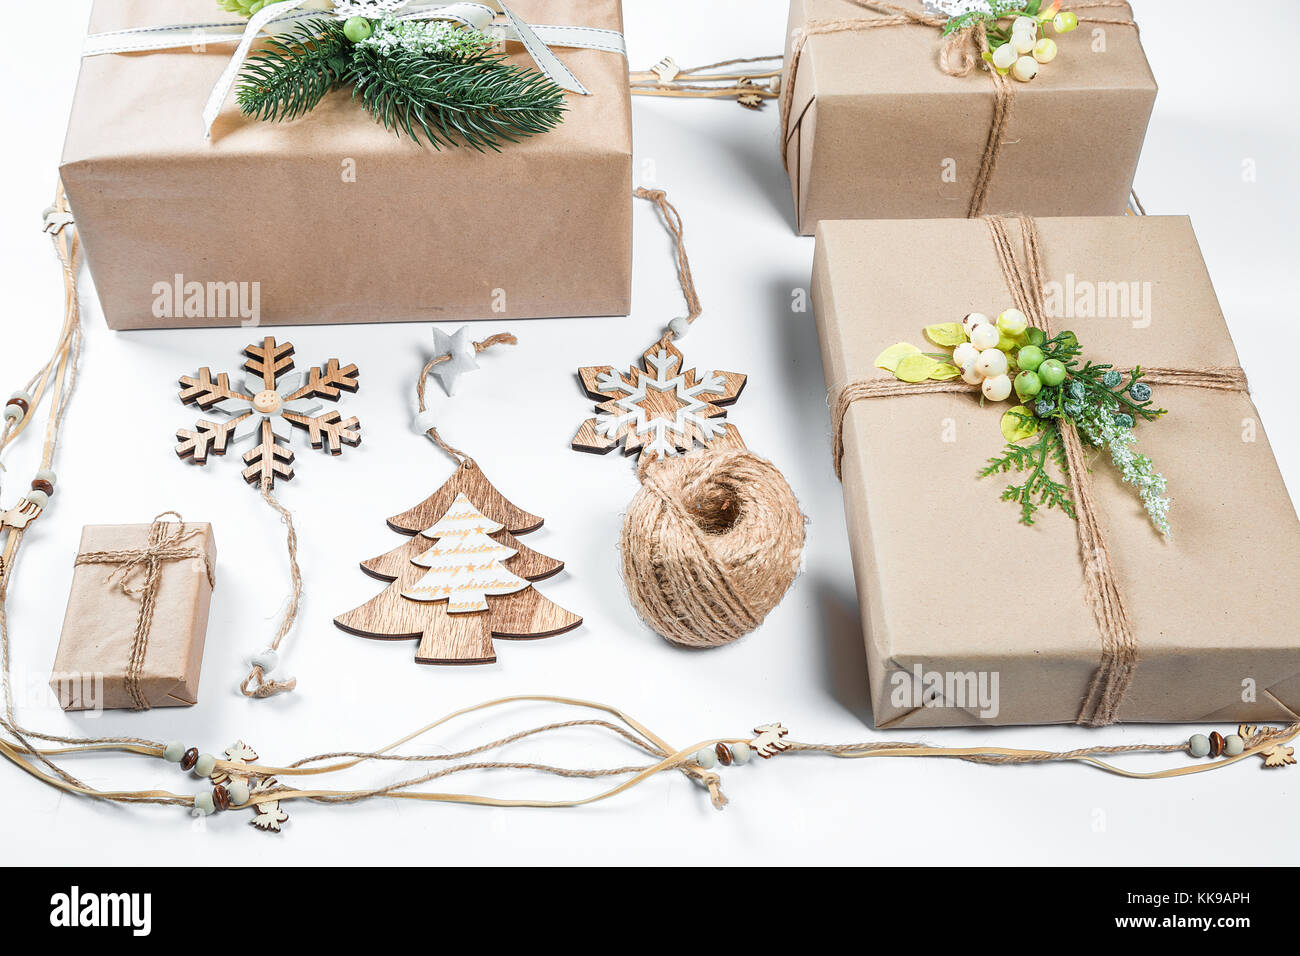 classy christmas gifts box presents in brown paper with toys and new year decor on white merry christmas card background